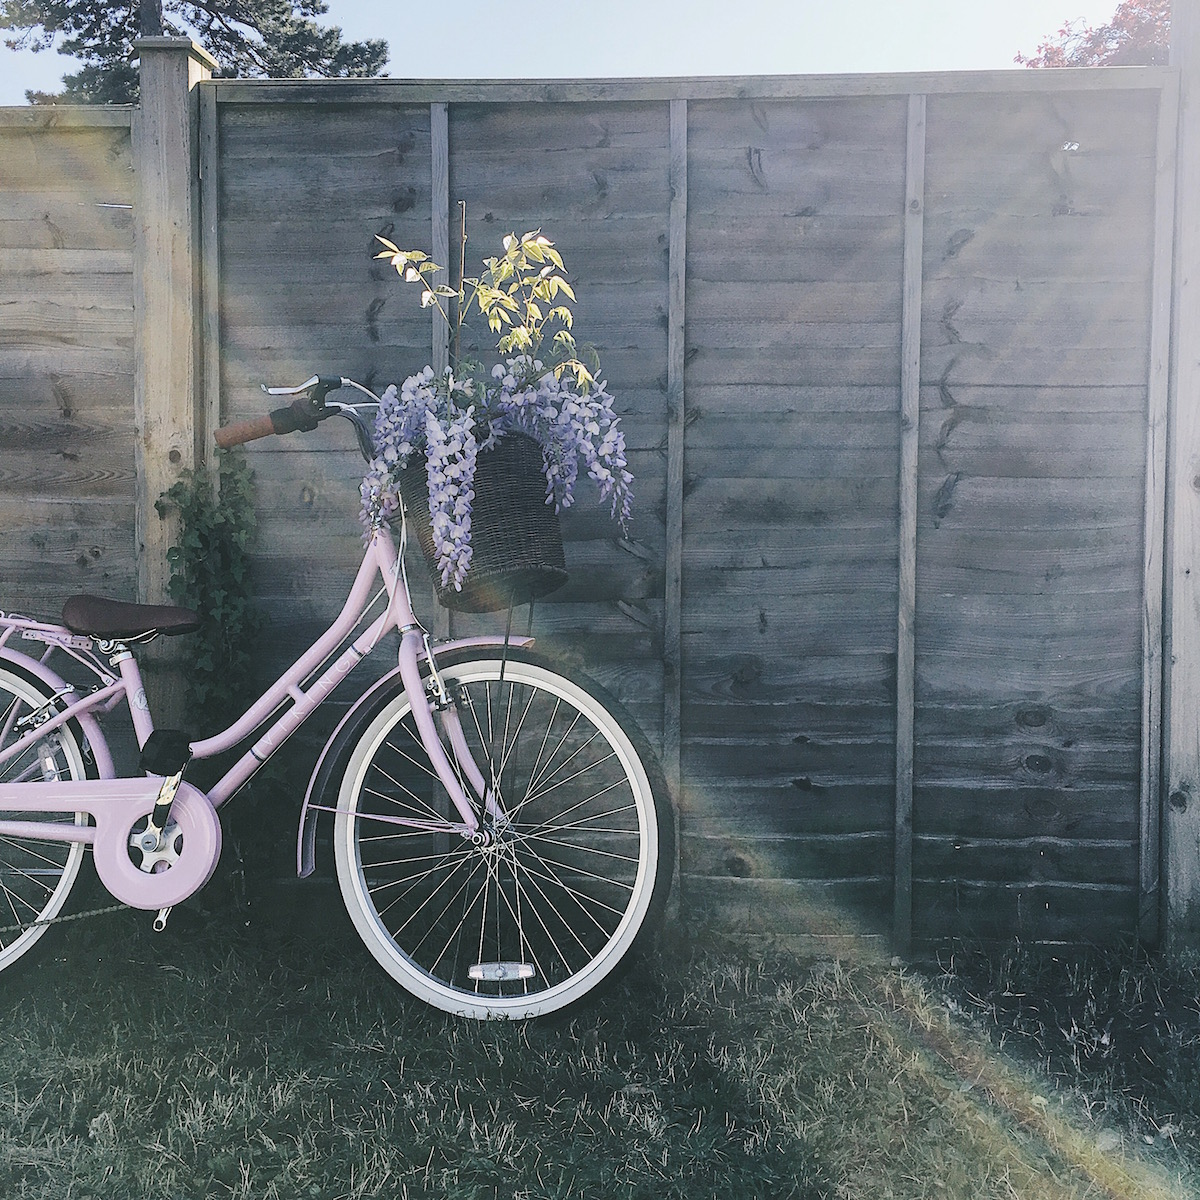 Ideas for Instagram photo props & hashtags - bikes and sunlight